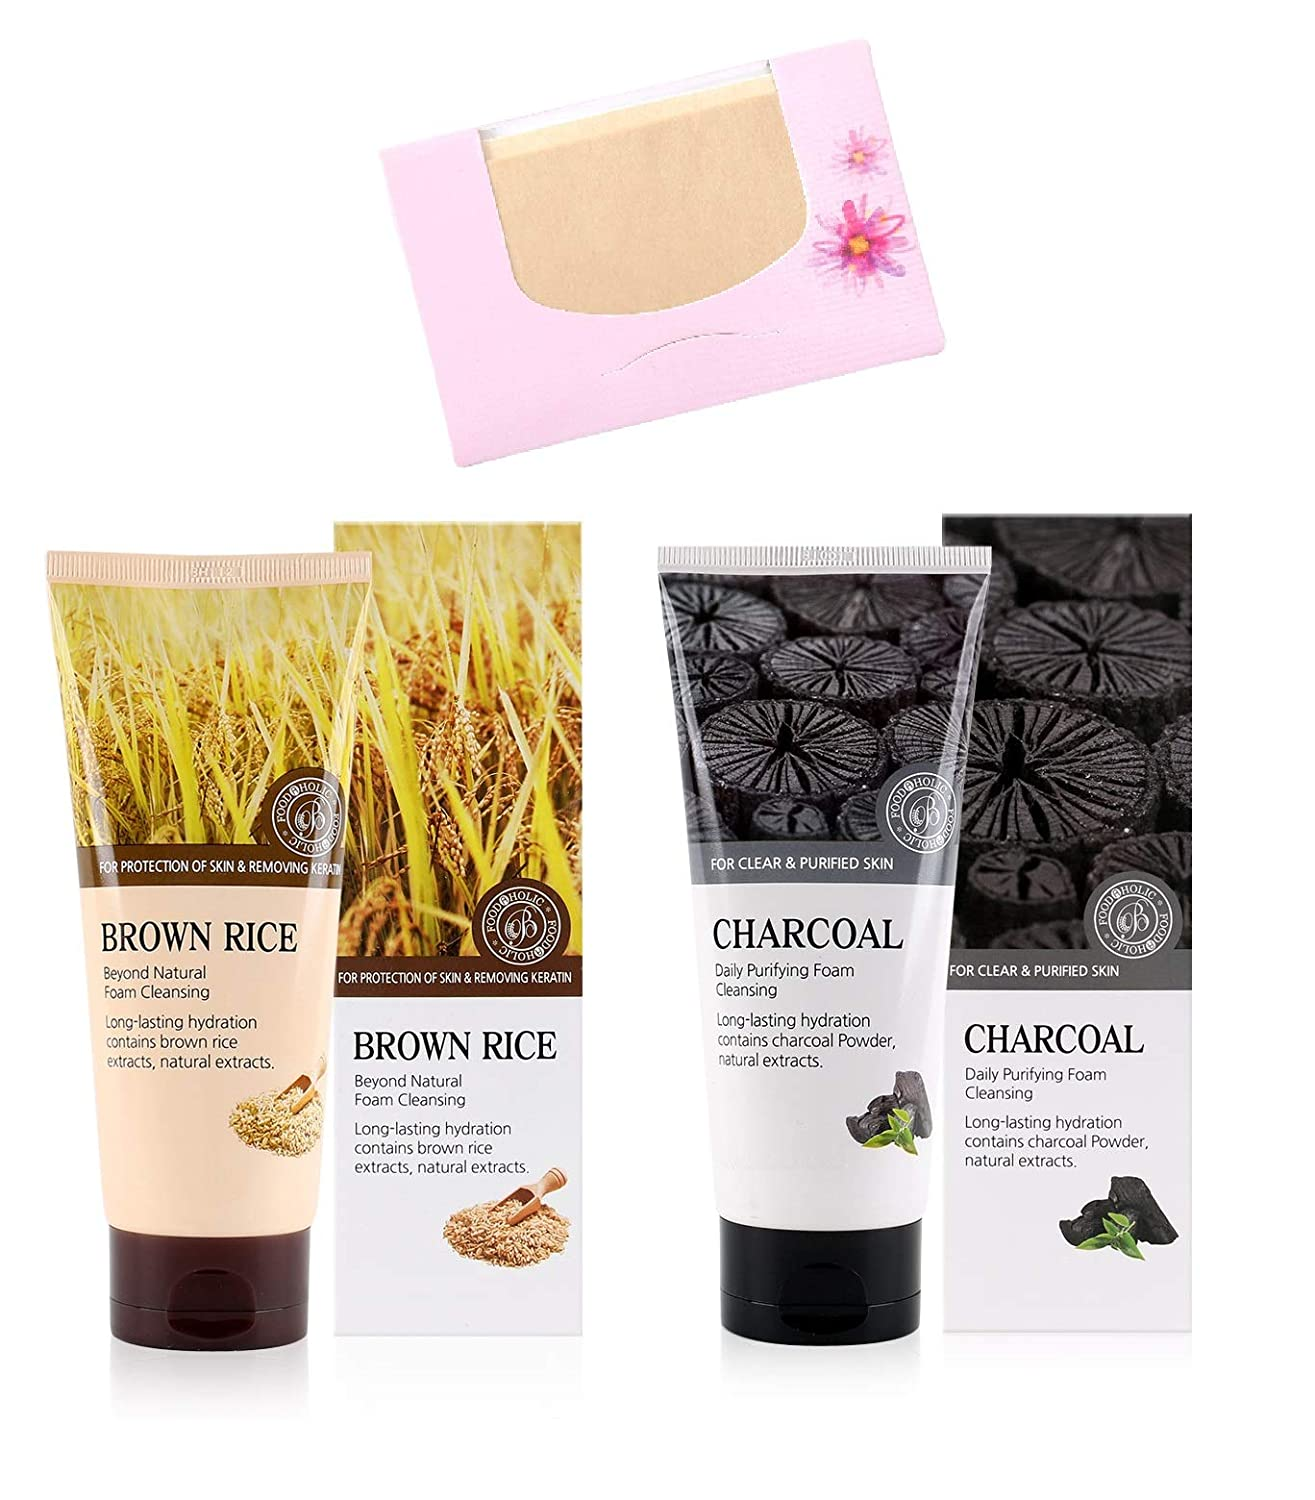 SoltreeBundle 2pcs Charcoal Daily Purifying & Brown Rice Beyond Natural Foam Cleansing 180ml / 6.08oz with SoltreeBundle Natural Hemp Paper 50pcs - Korea Skincare Best